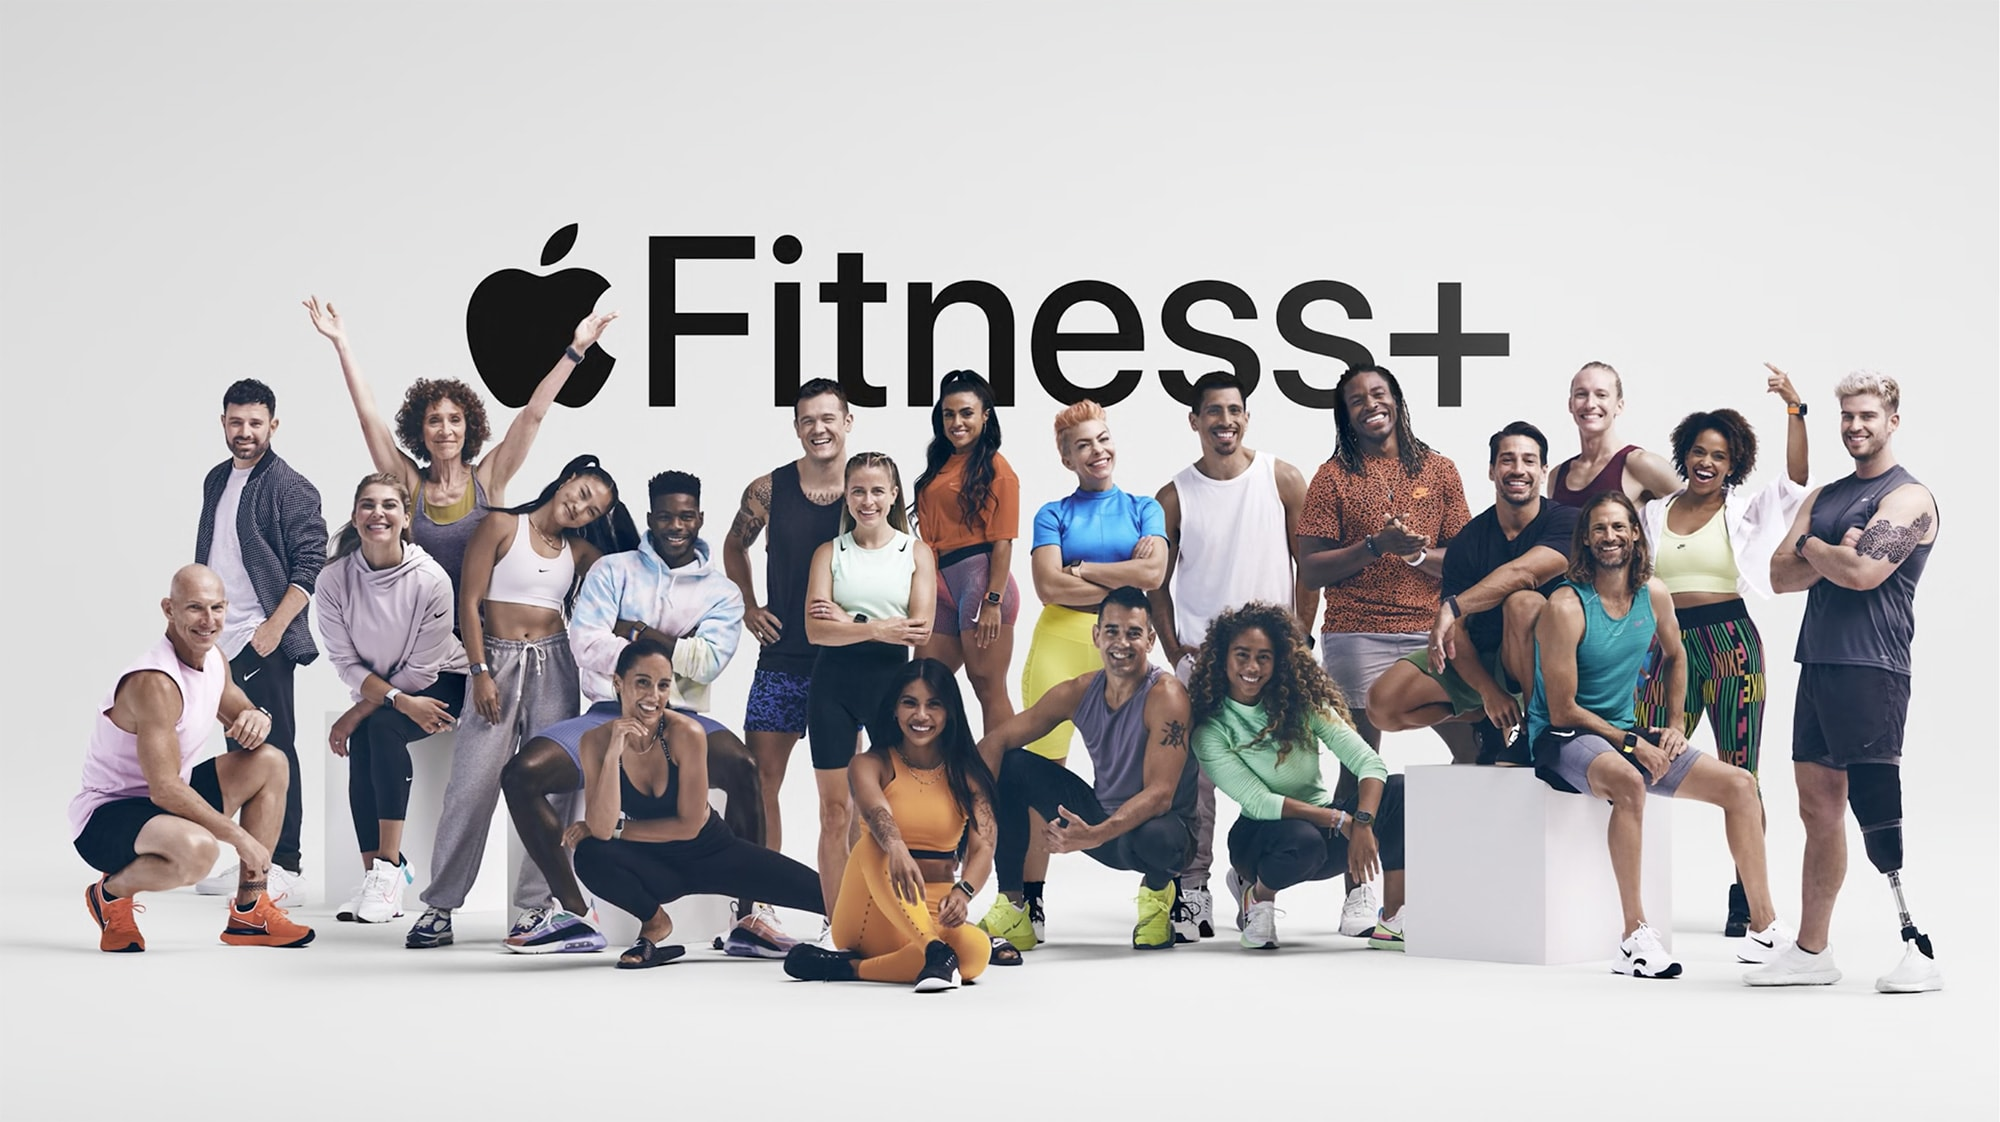 Get to know Apple's trainers on their new Instagram page